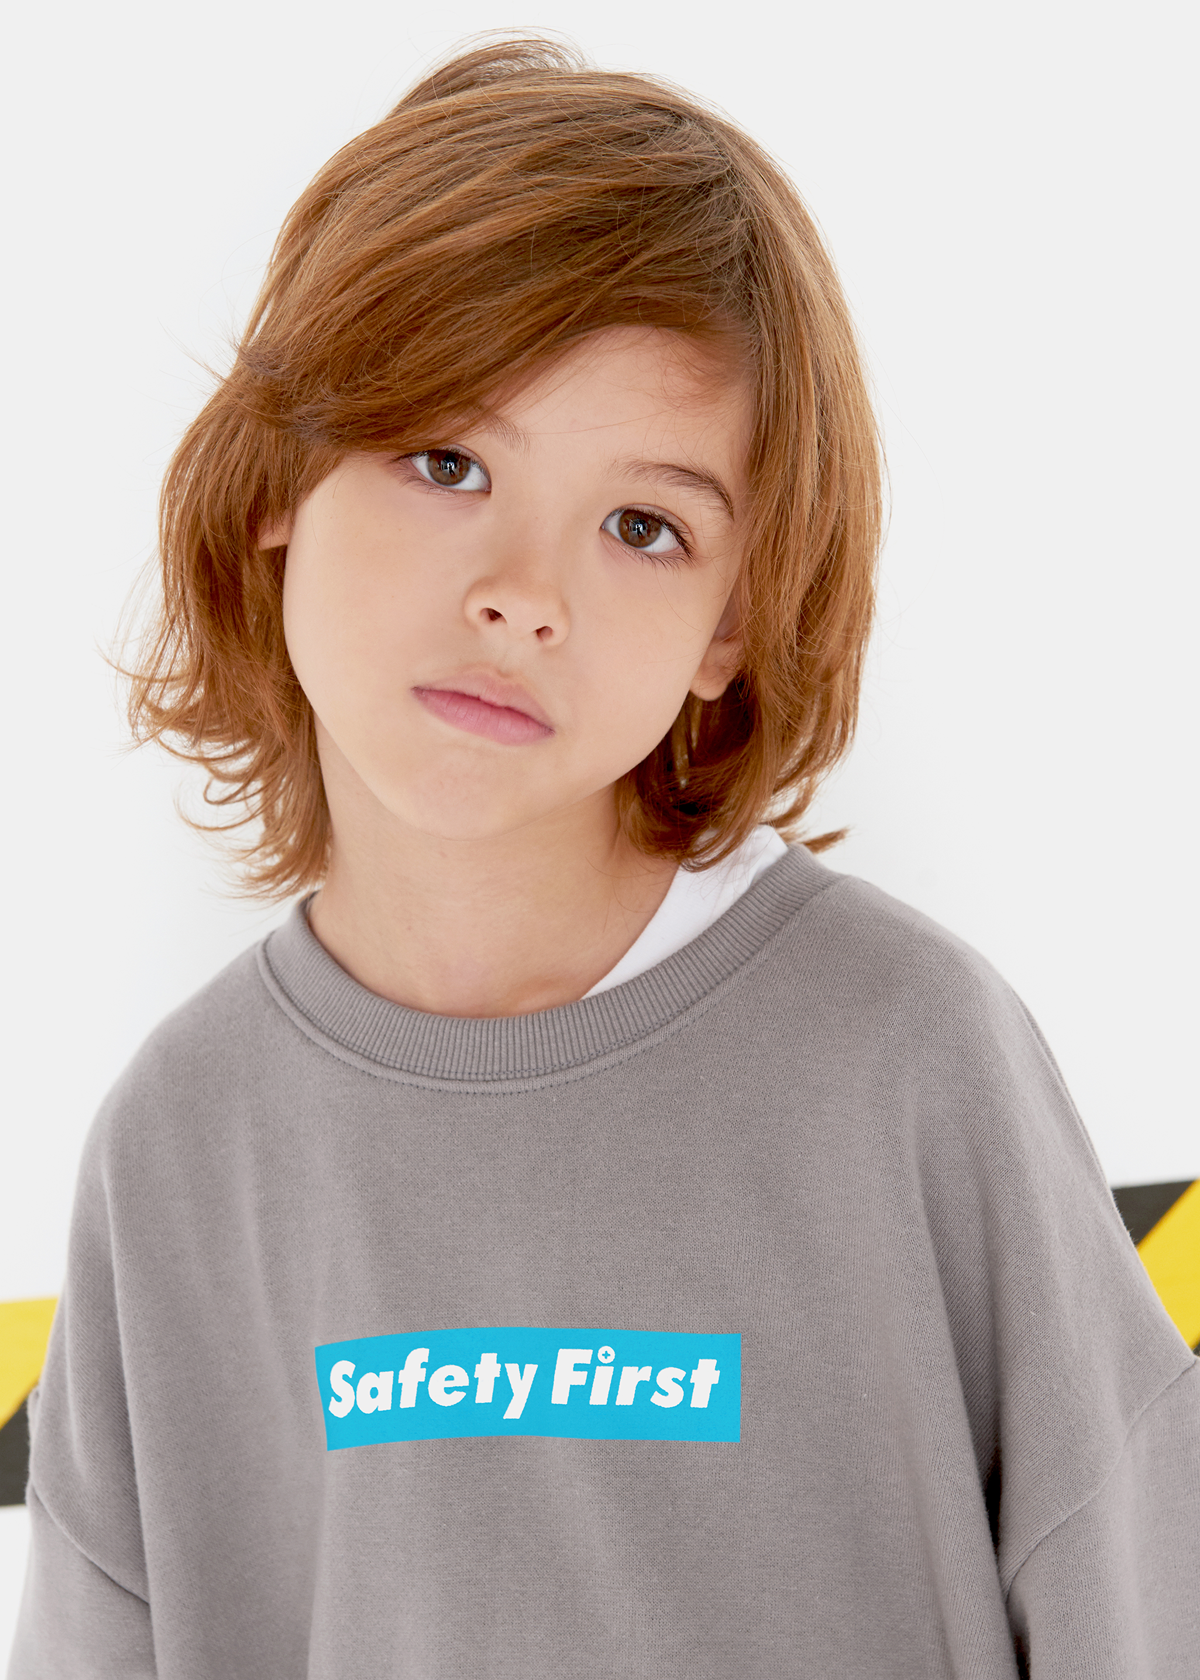 [3차재입고완료]SAFETY FIRST SWEAT SHIRT-GREY